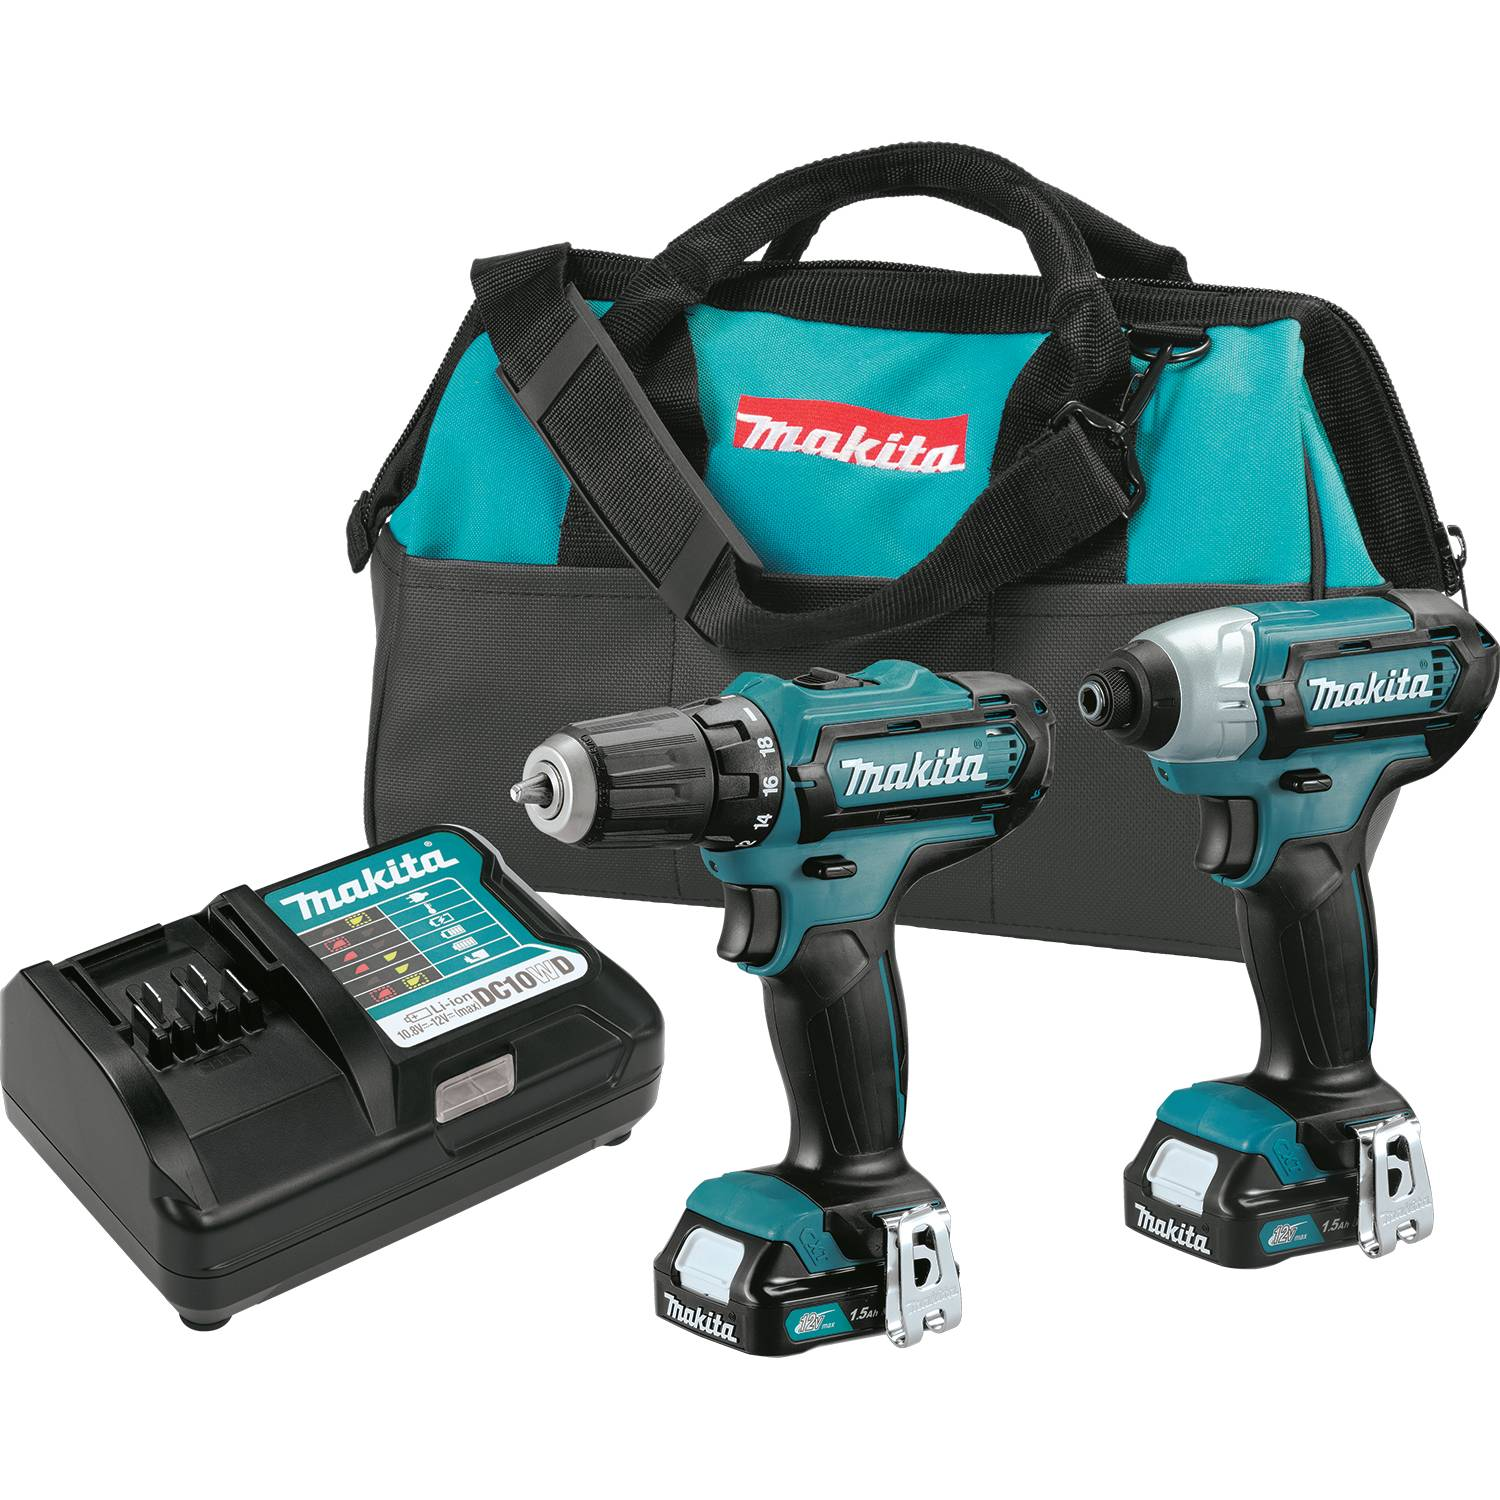 new makita 12v drill and impact driver with slide pack batteries now available tool craze. Black Bedroom Furniture Sets. Home Design Ideas